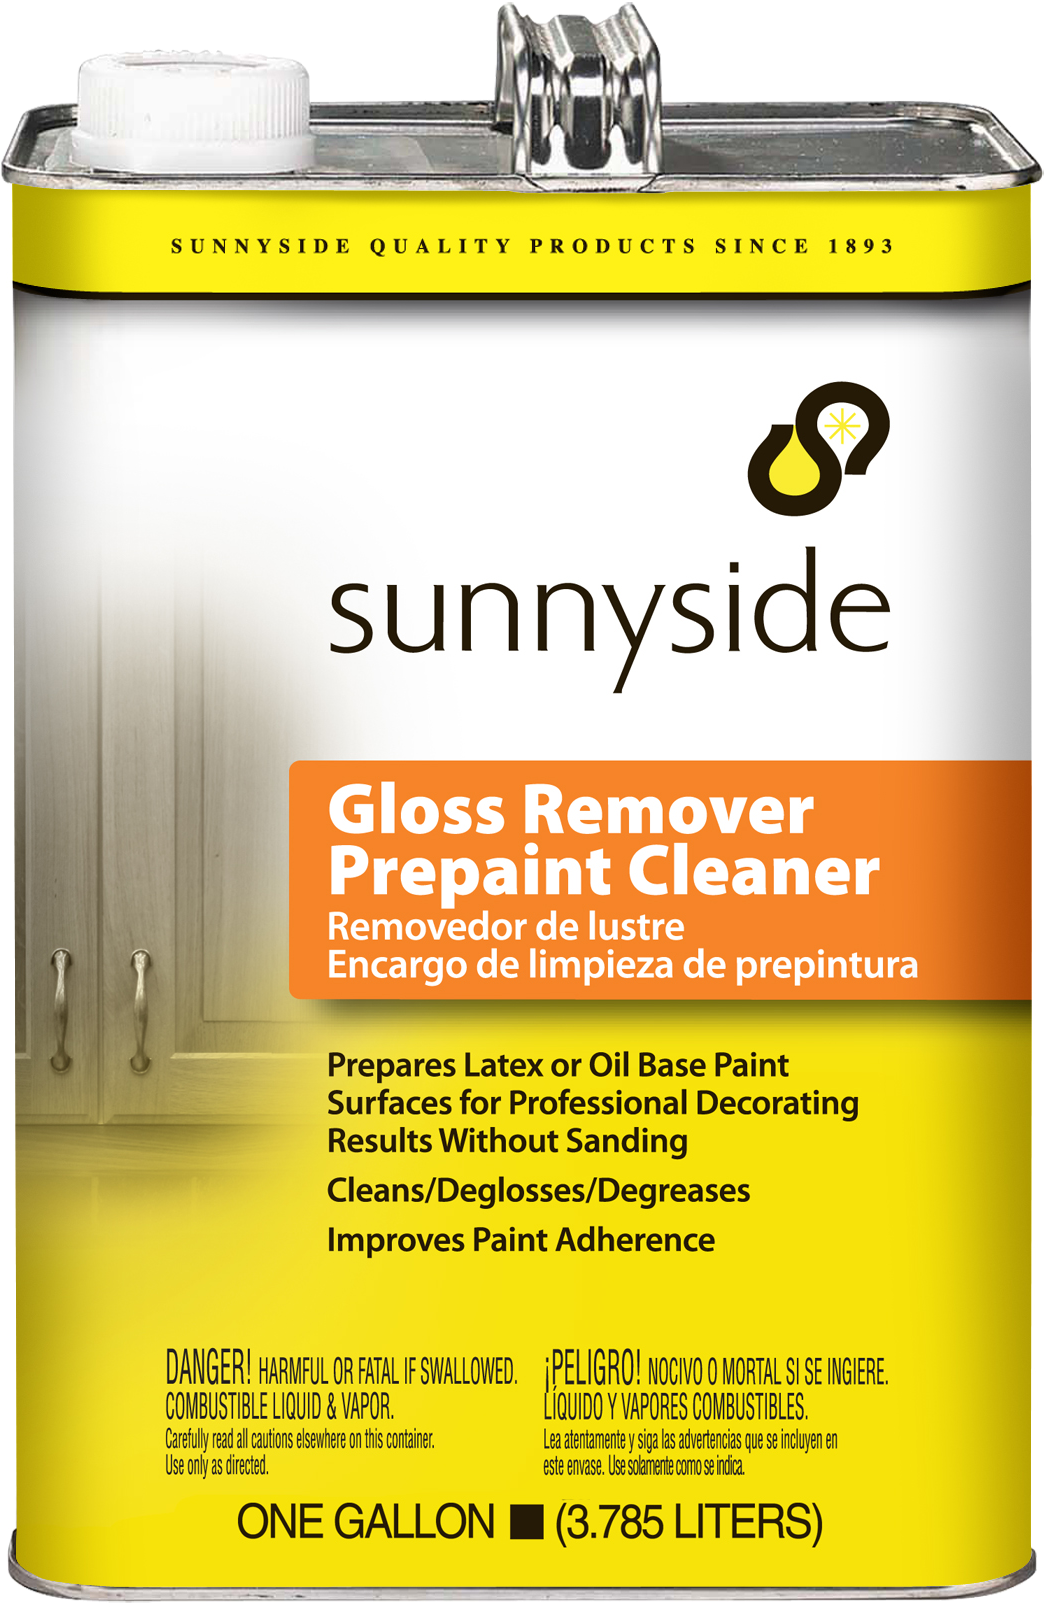 GLOSS REMOVER PREPAINT CLEANER Product Image